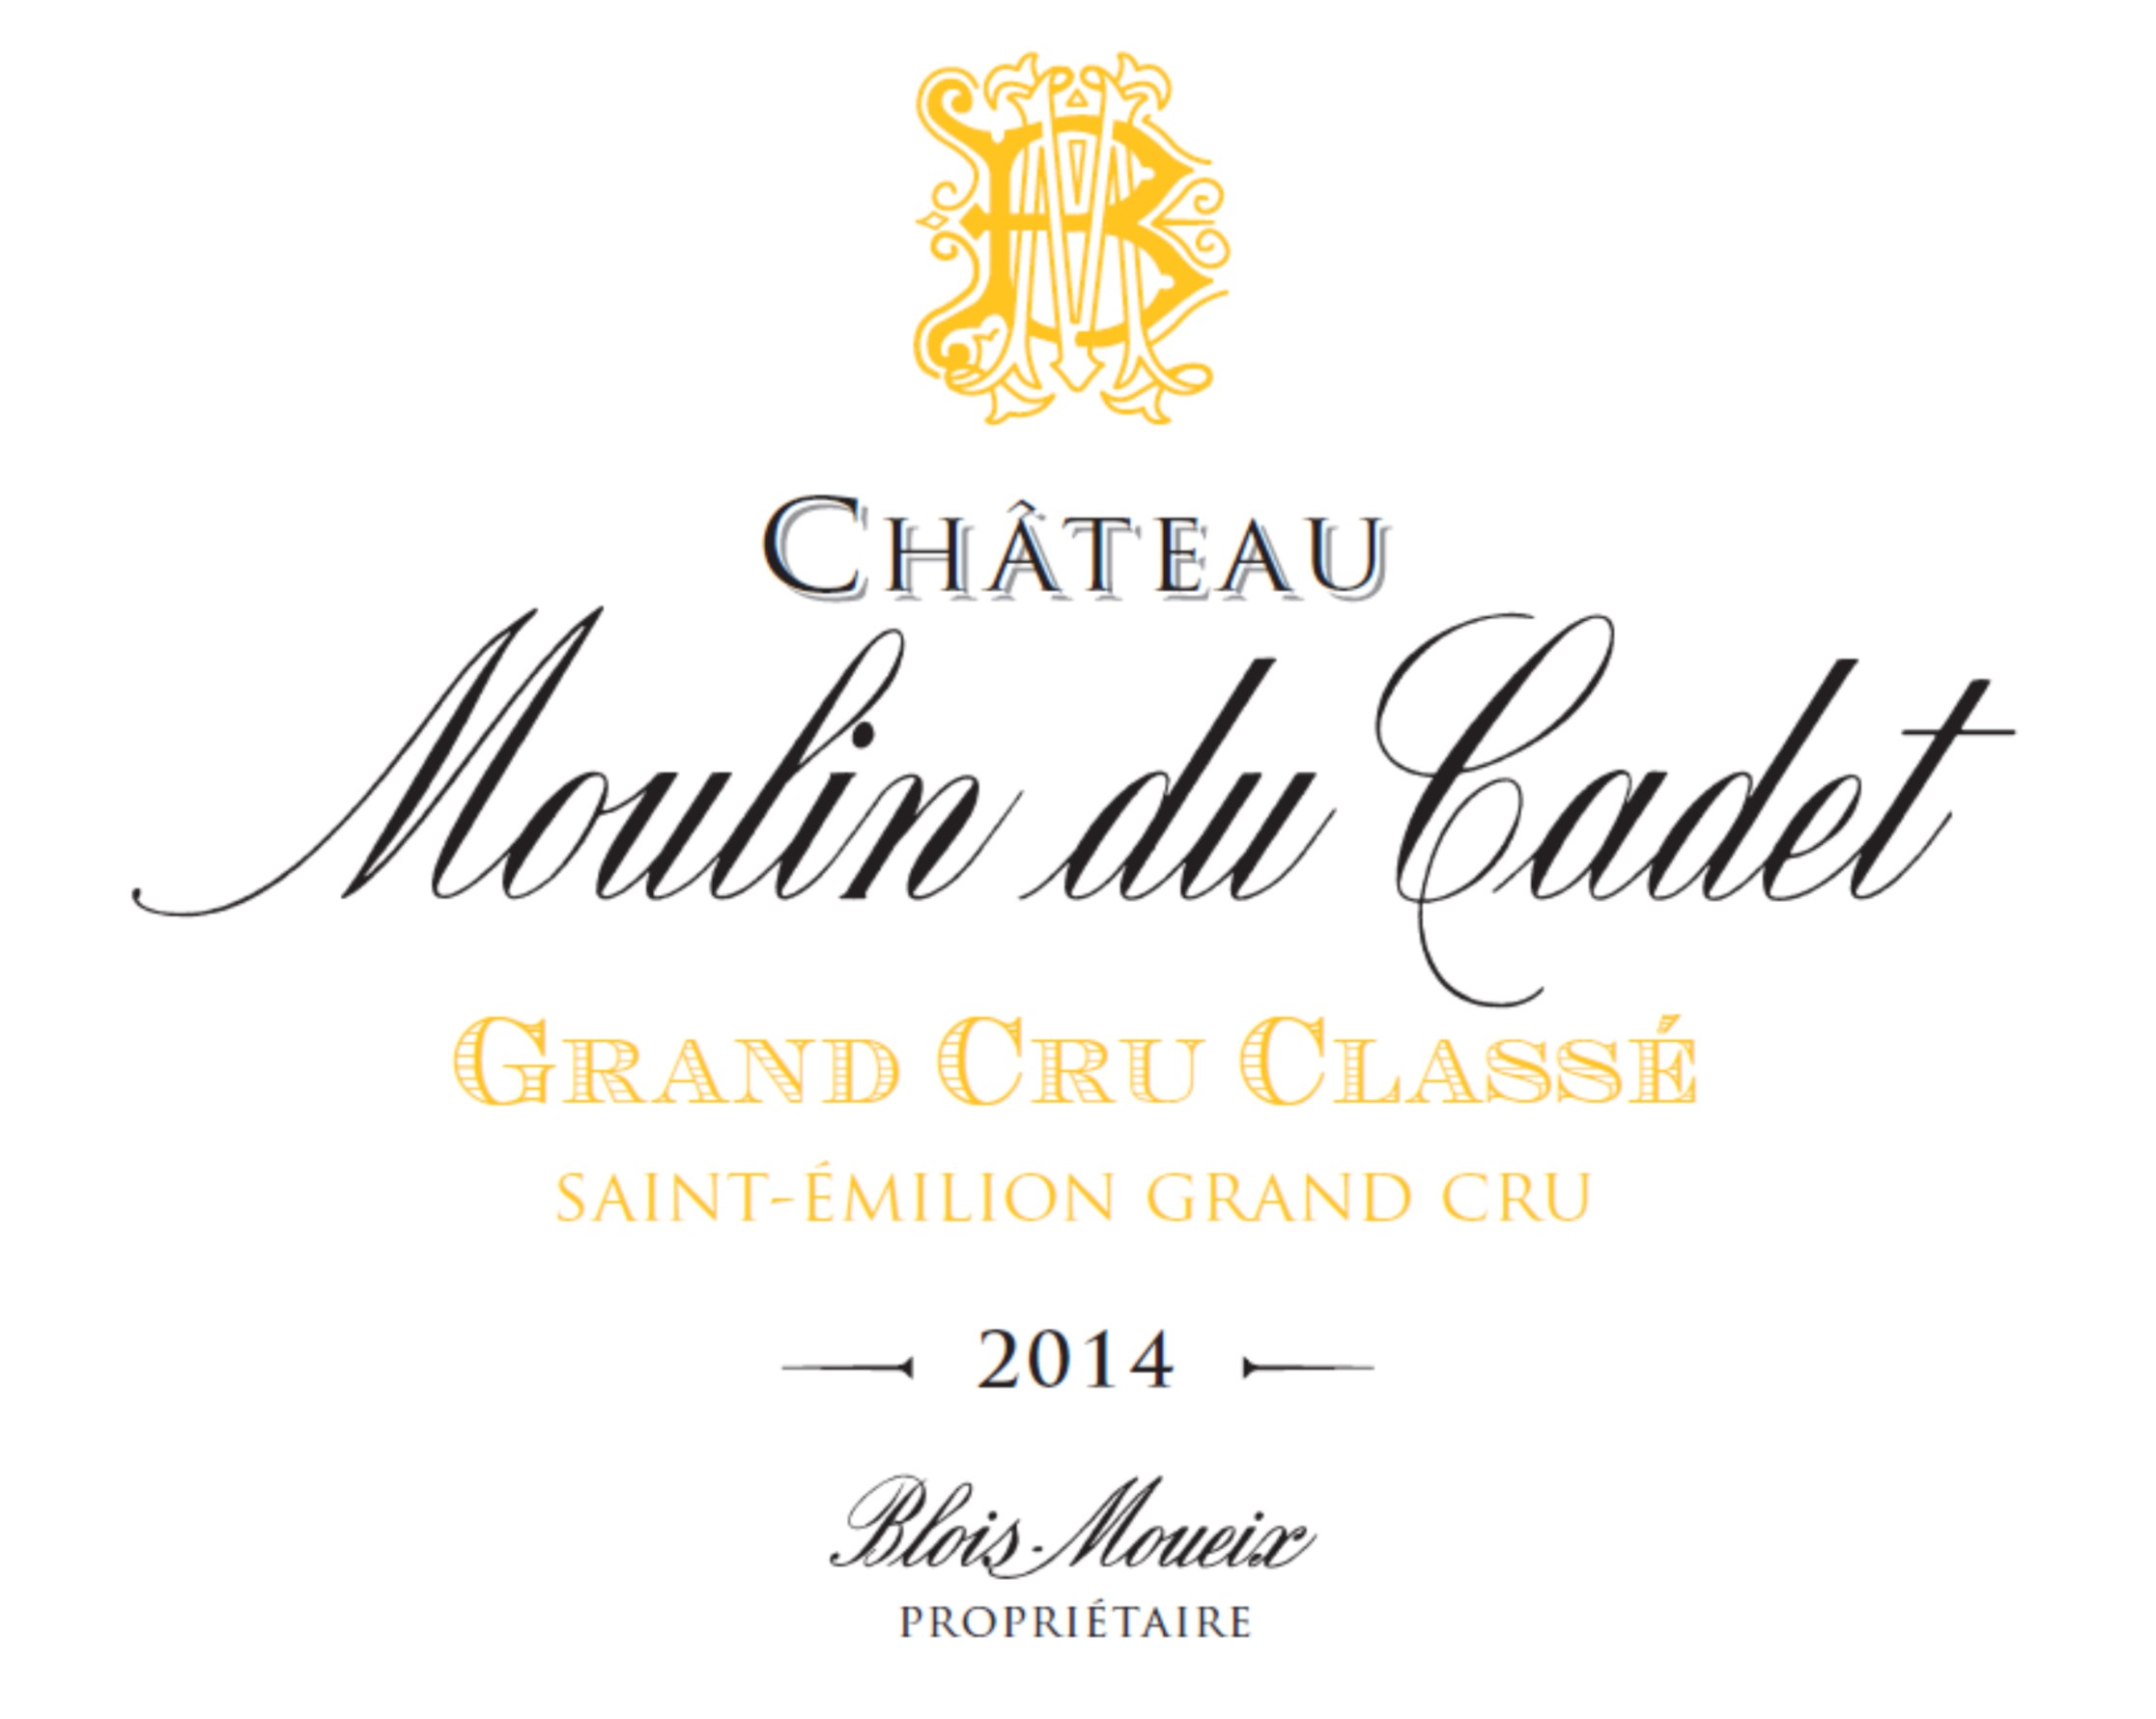 Chateau moulin du cadet 2018